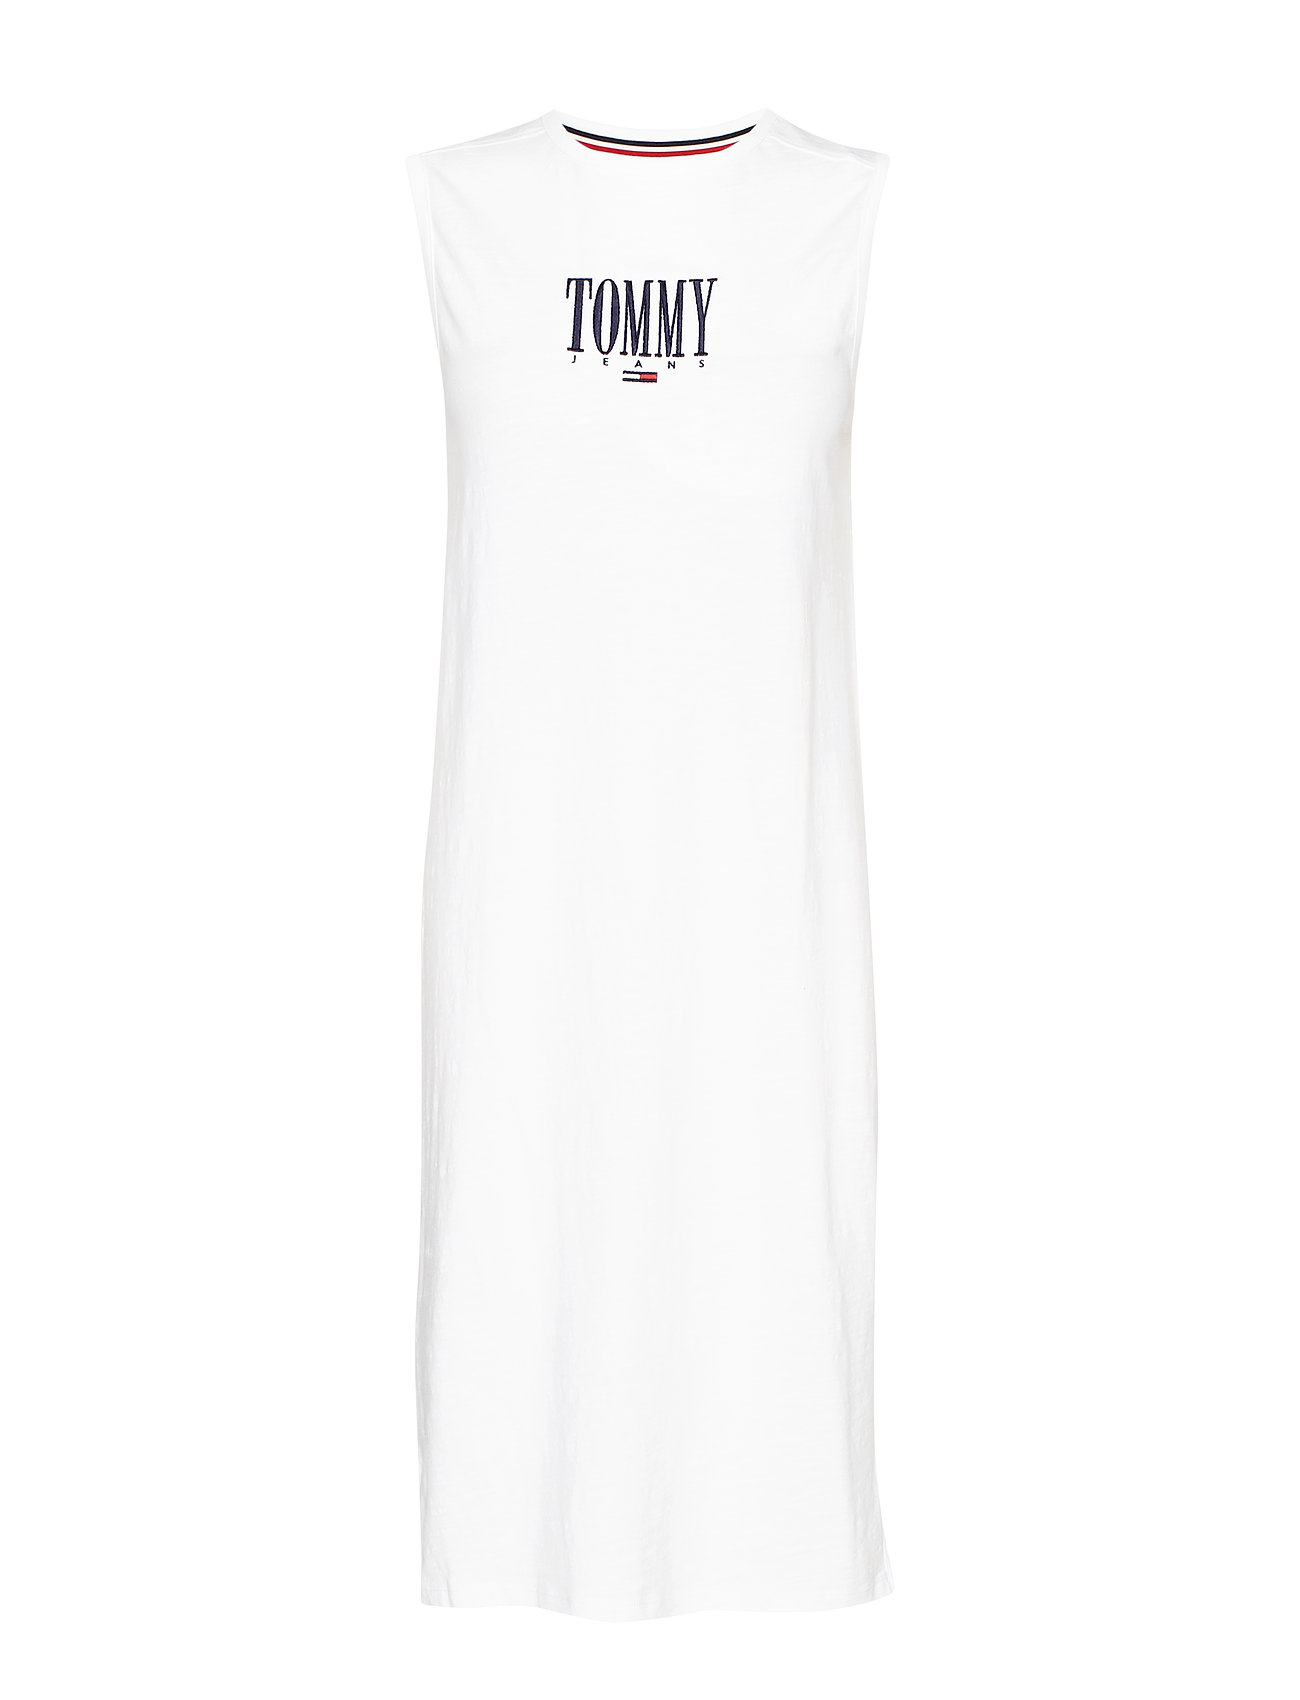 Tommy Jeans TJW EMBROIDERY TANK - CLASSIC WHITE